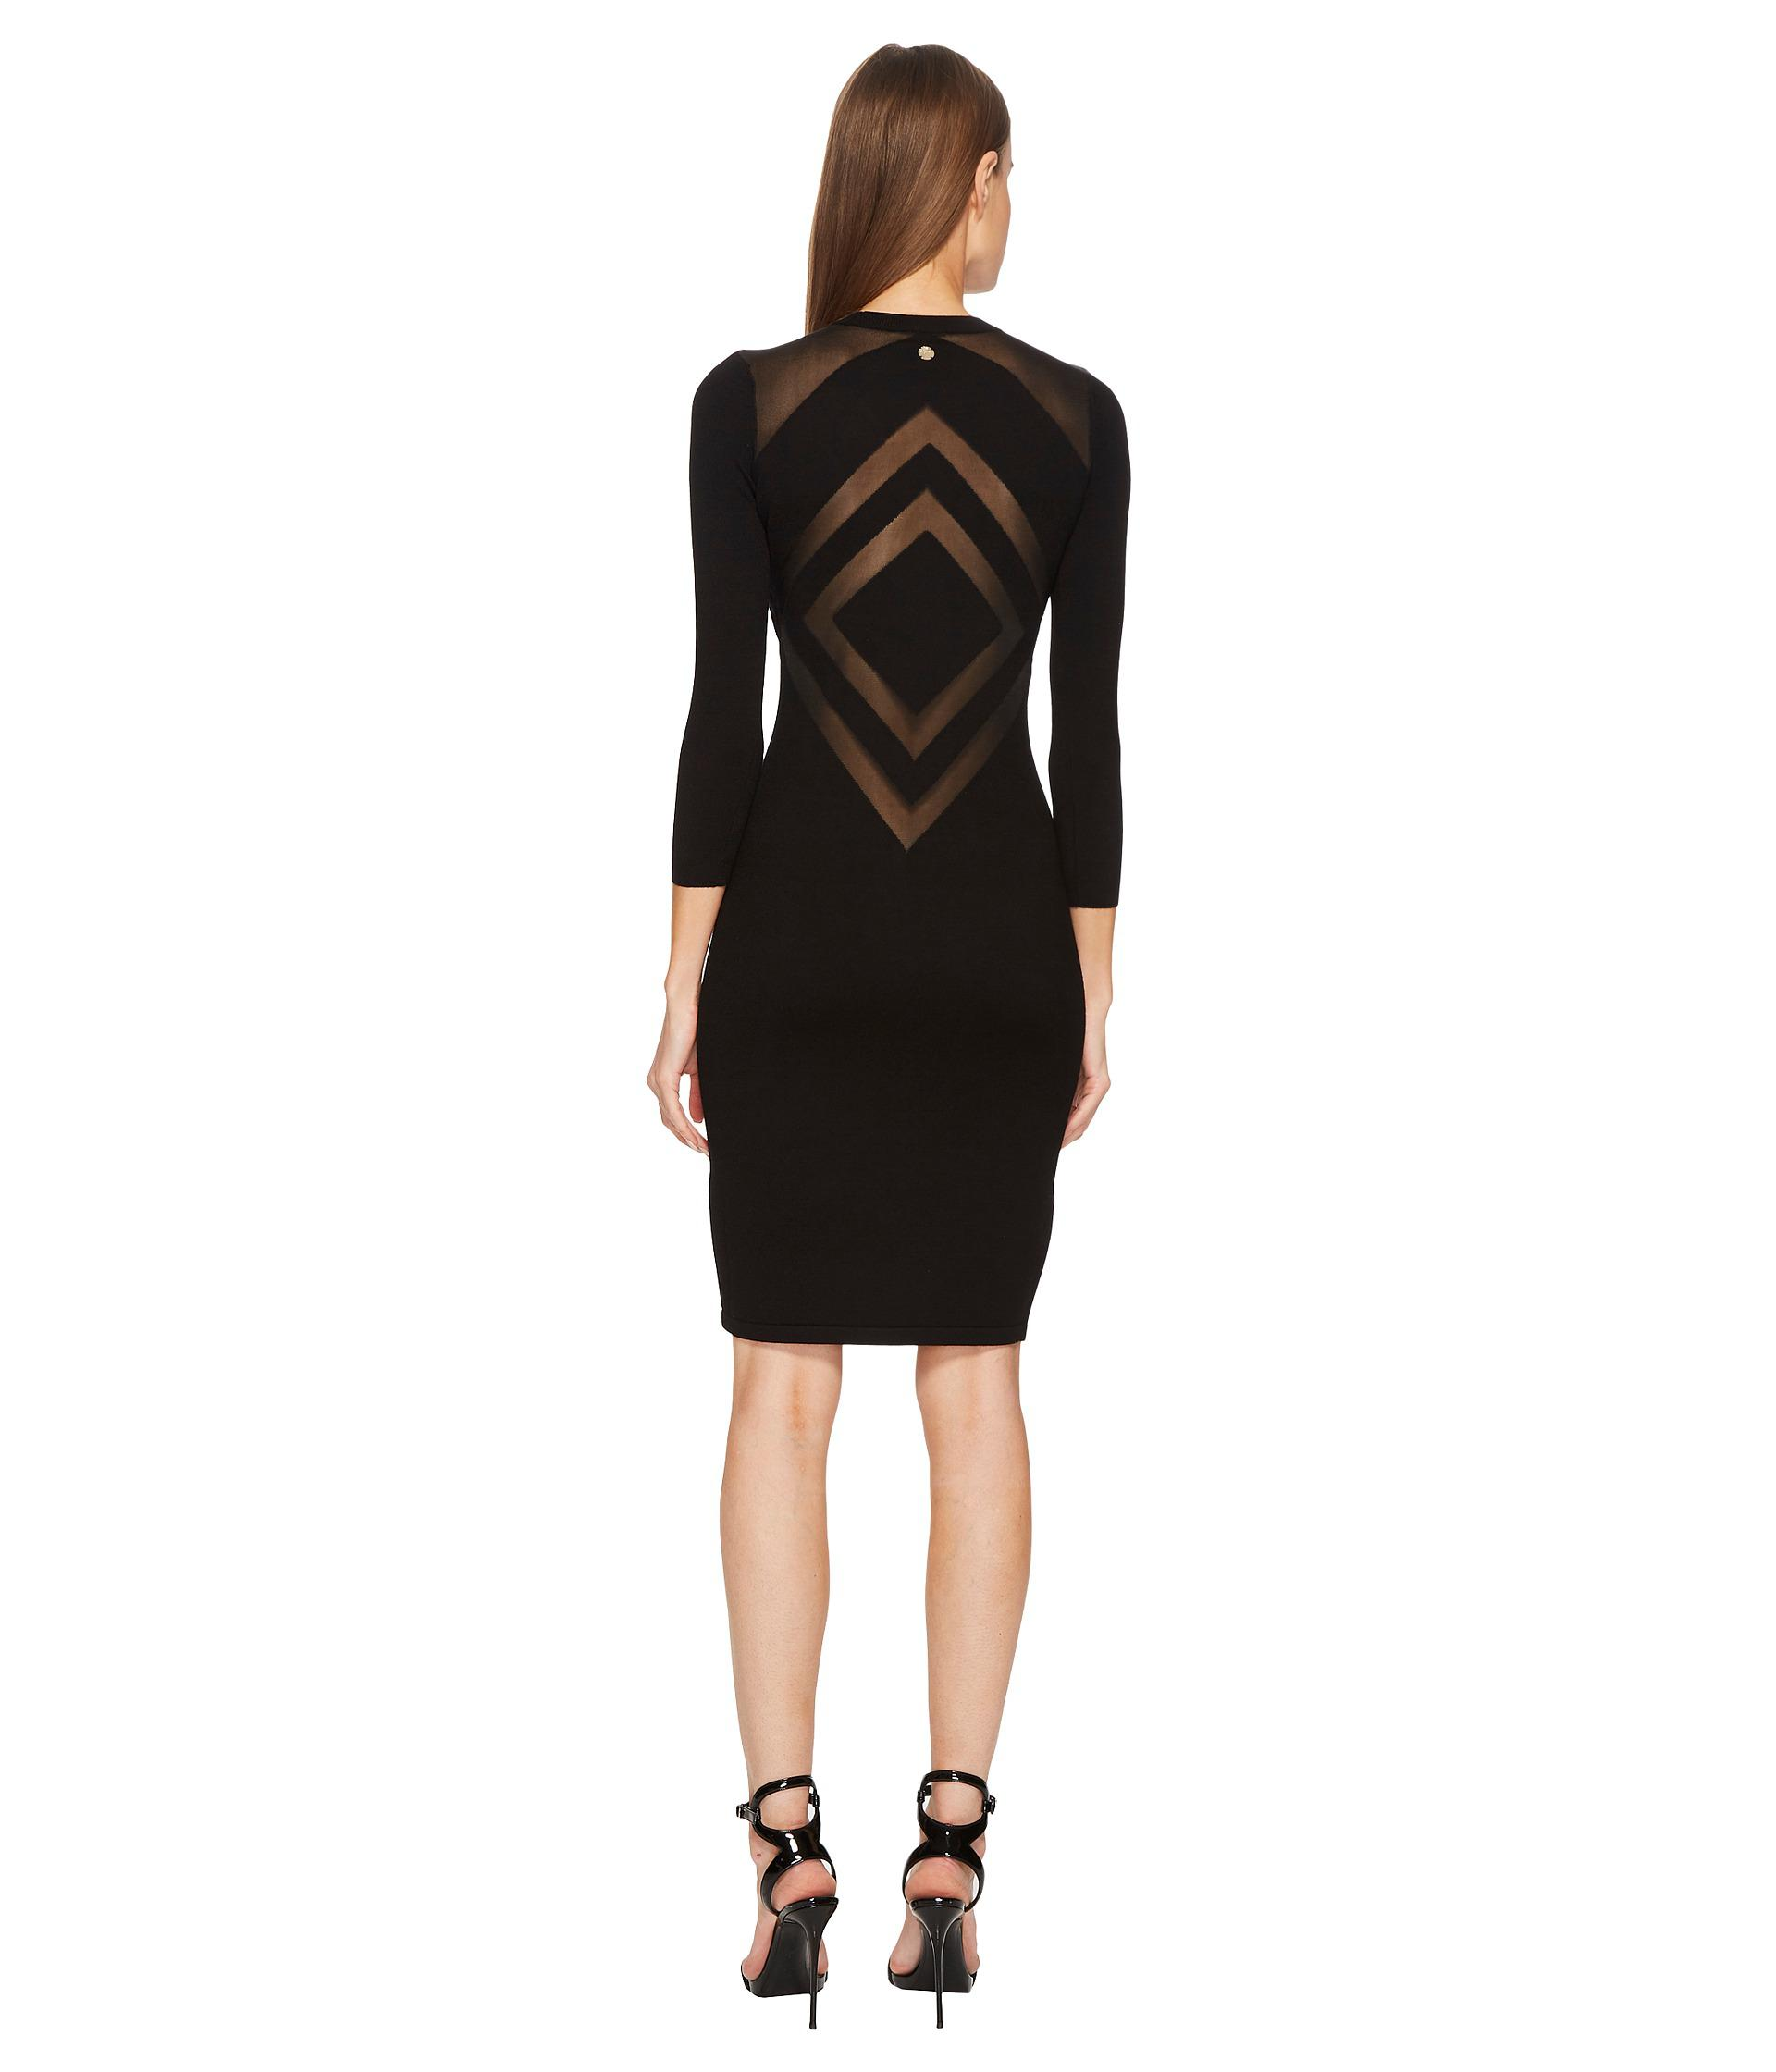 outlet store a1b9e c4715 Versace Synthetic Abito Maglia Donna Dress in Black - Lyst